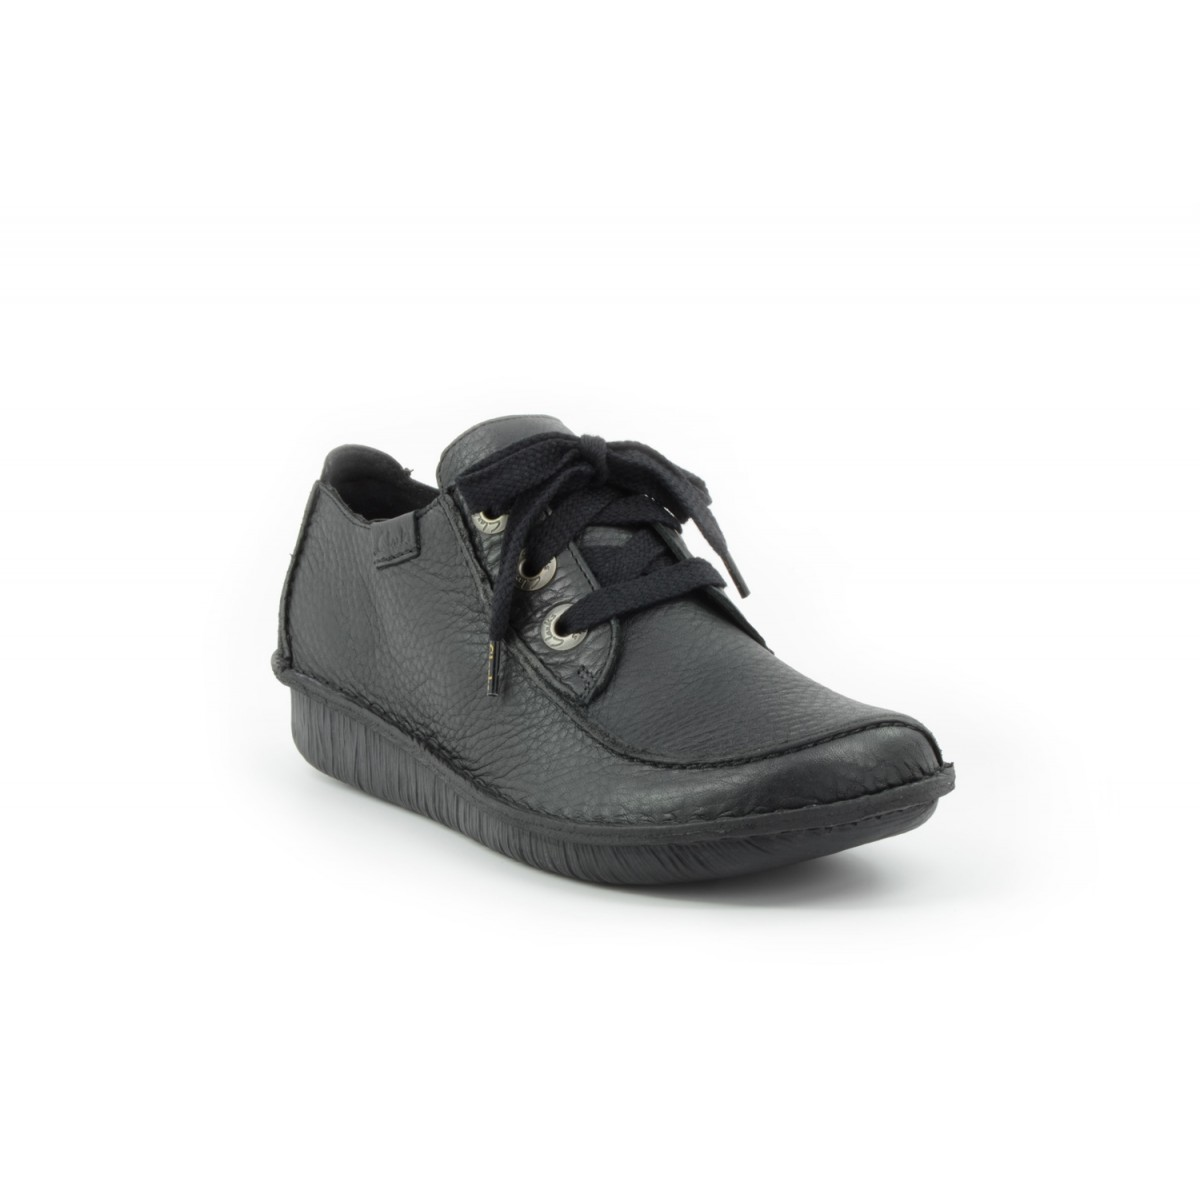 Boys Shoes All Sale: Save Up to 75% Off! Shop loweredlate.ml's huge selection of Boys Shoes All - Over 2, styles available. FREE Shipping & Exchanges, and a % price guarantee!